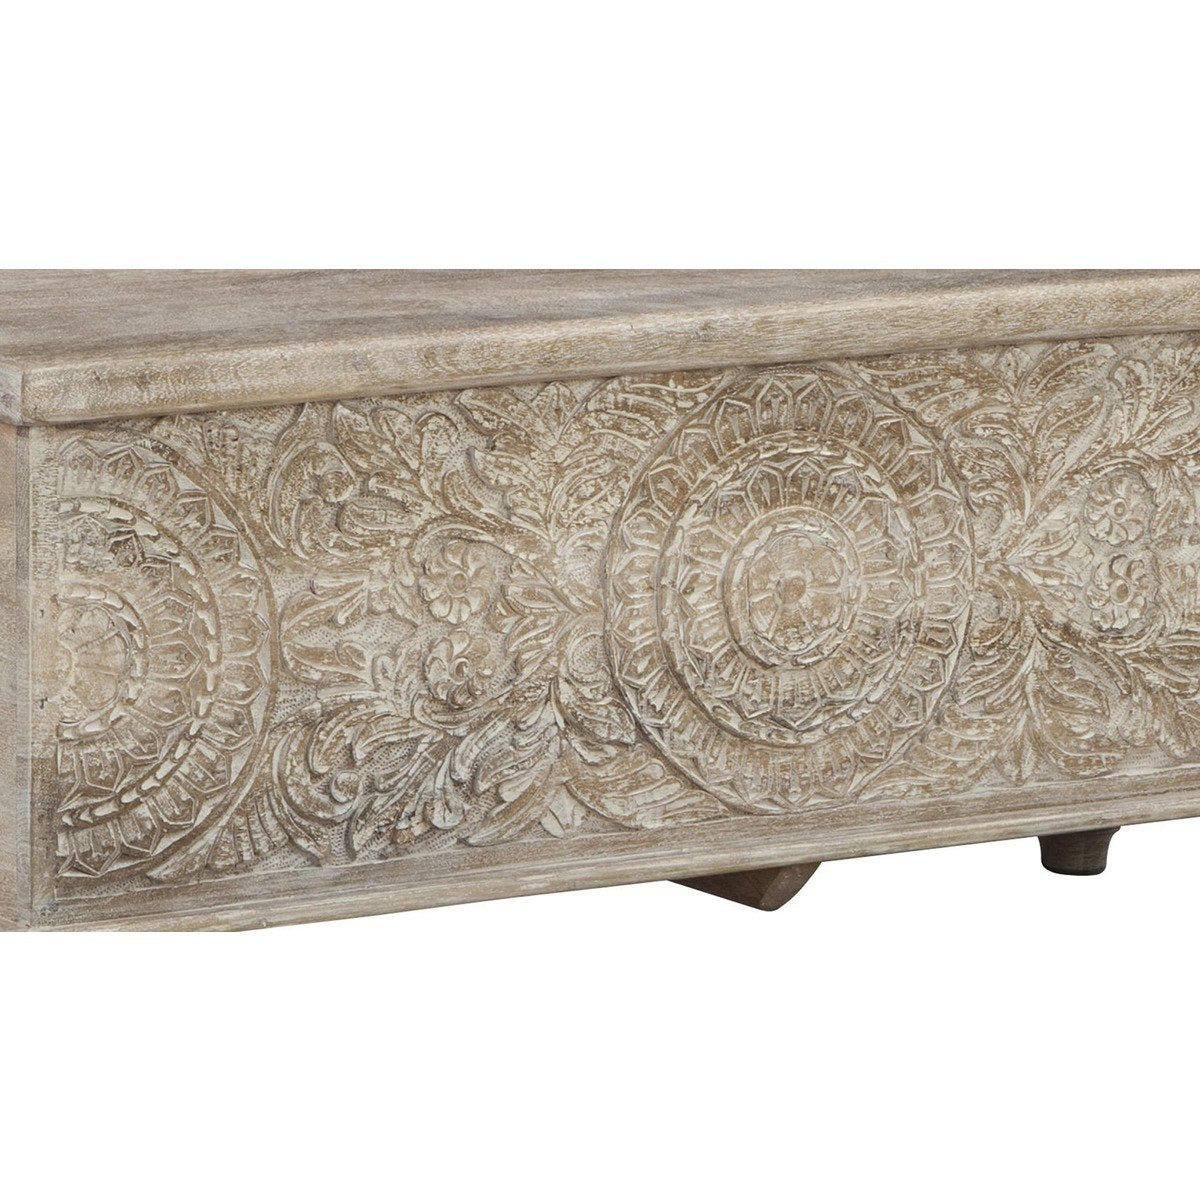 Accent And Storage Benches - Medallion Pattern Wooden Storage Bench With Hinged Opening, White